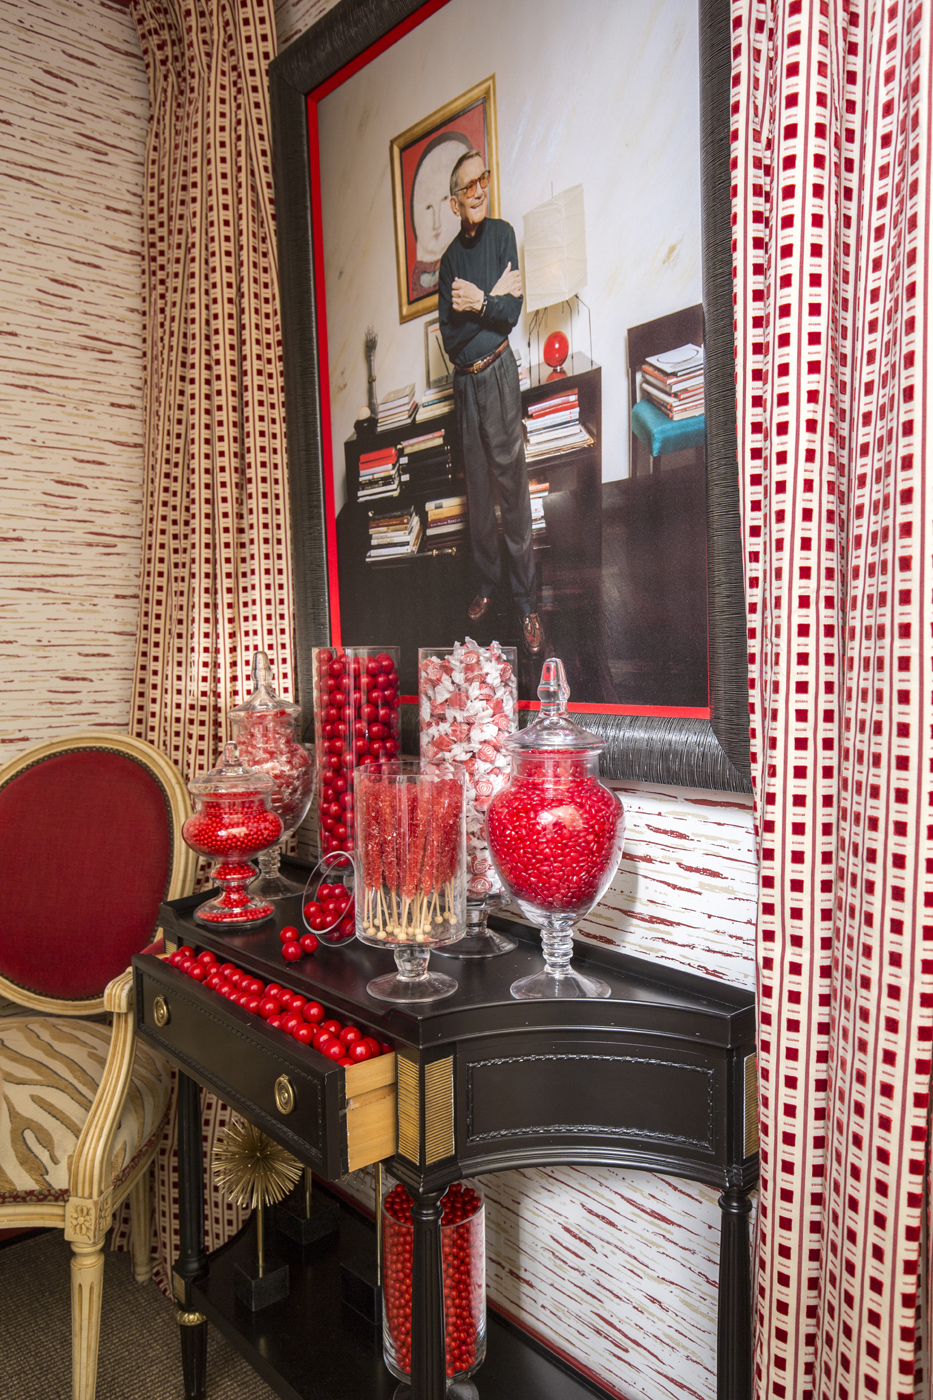 Glass containers filled with red candies serve as decorative accents   Savage Interior Design